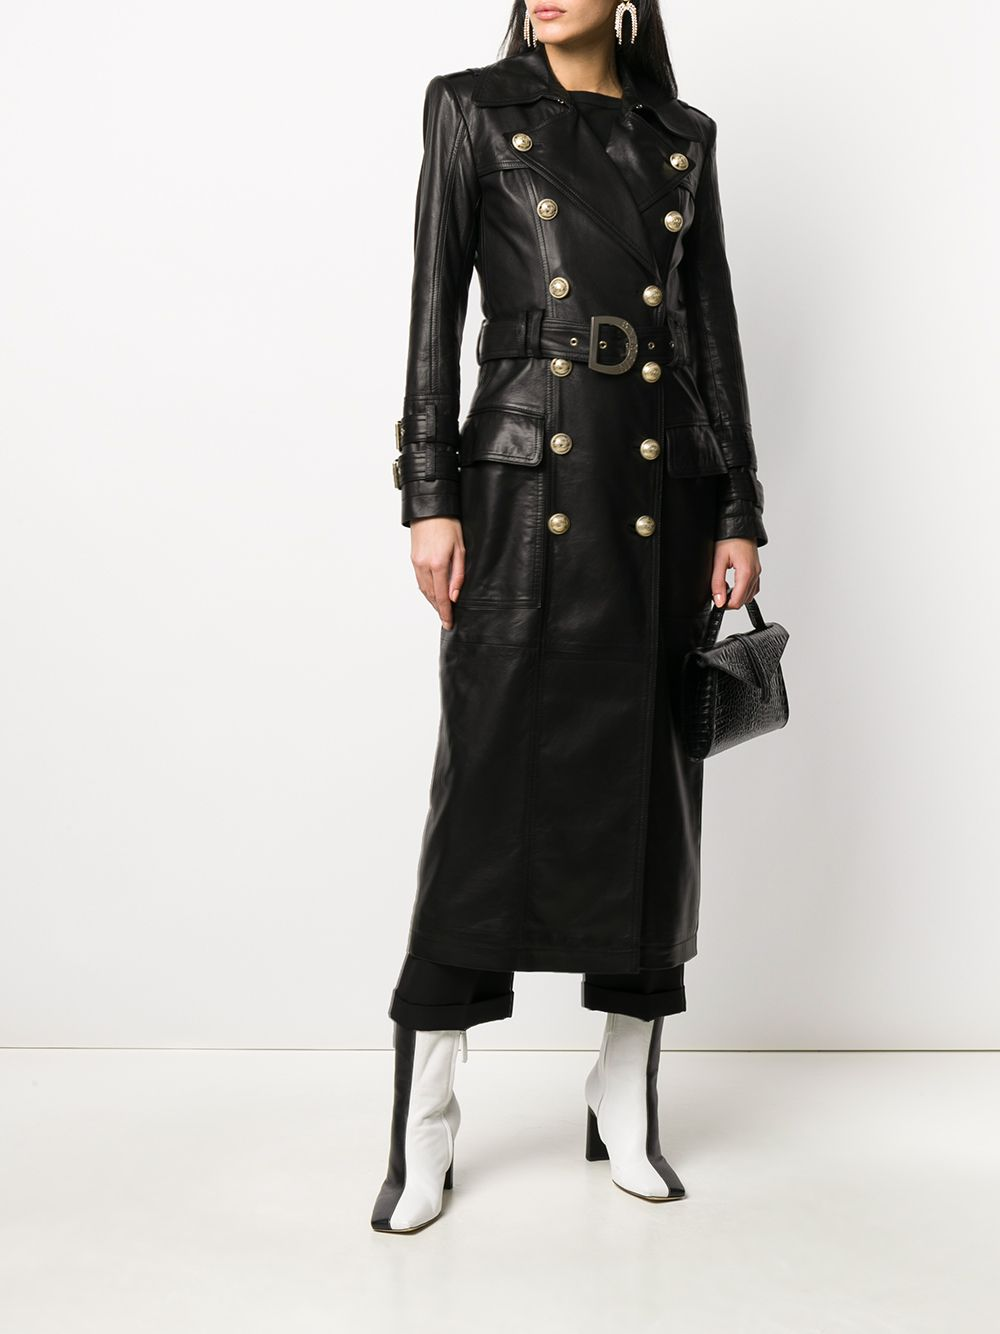 Long Black Leather Trench Coat (On Model)